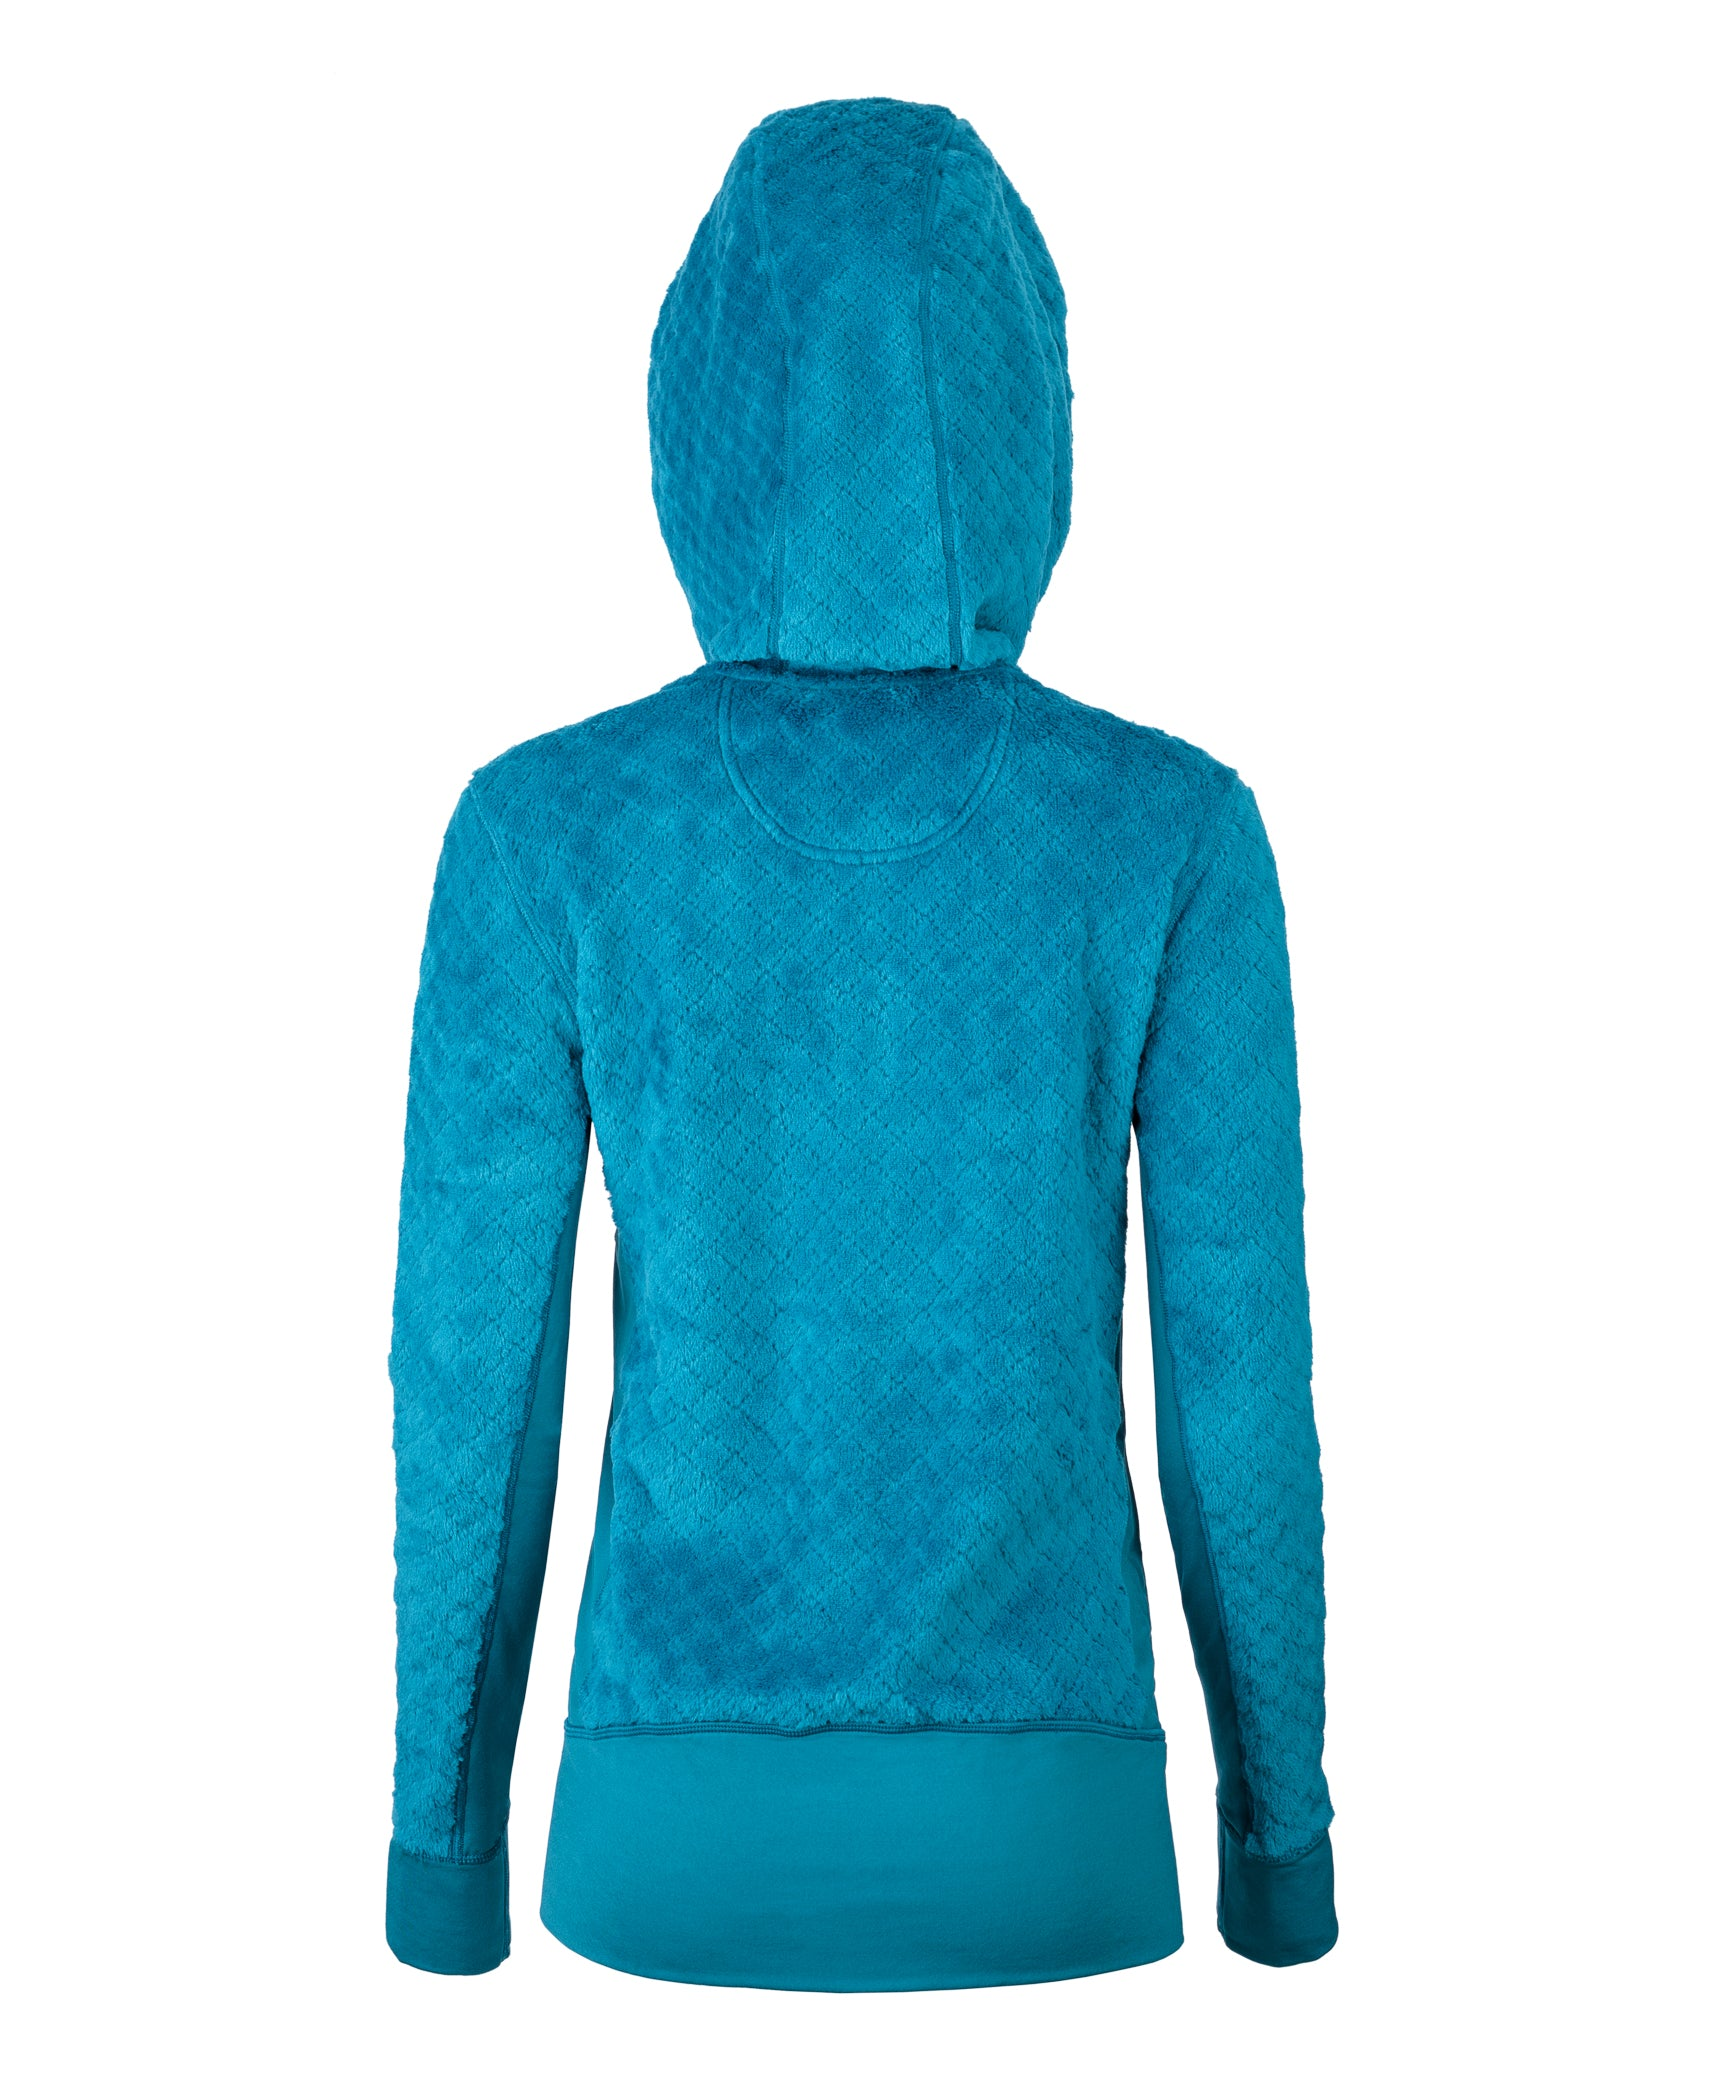 Women's Cozy Hoody